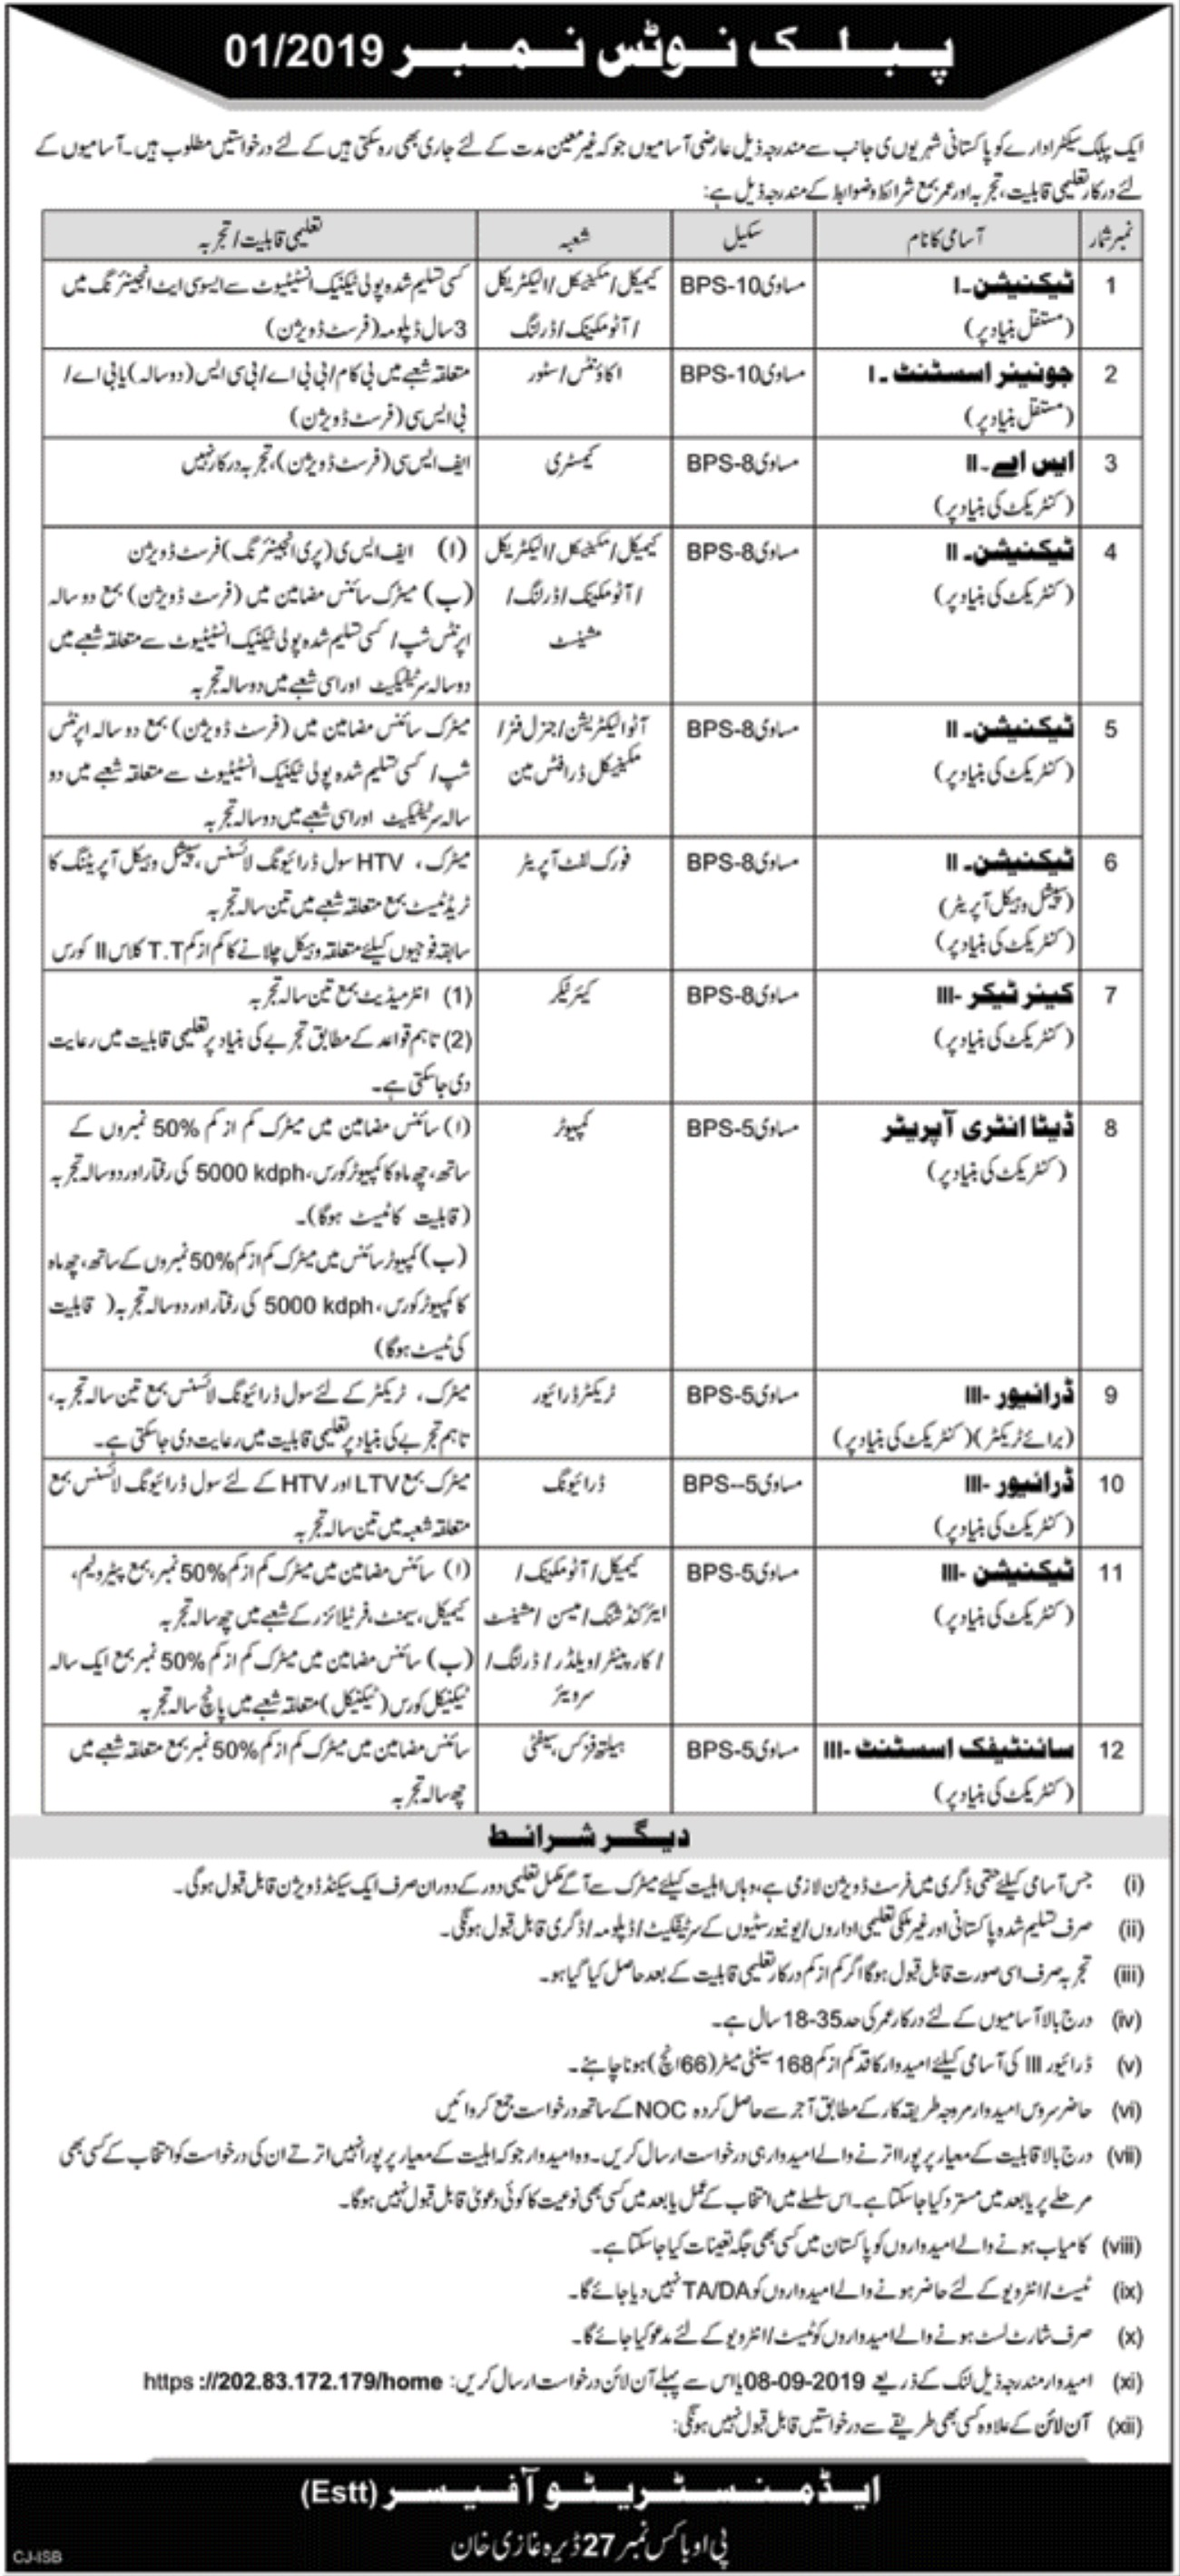 Public Sector Organization Jobs 2019 P.O.Box 27 DG Khan